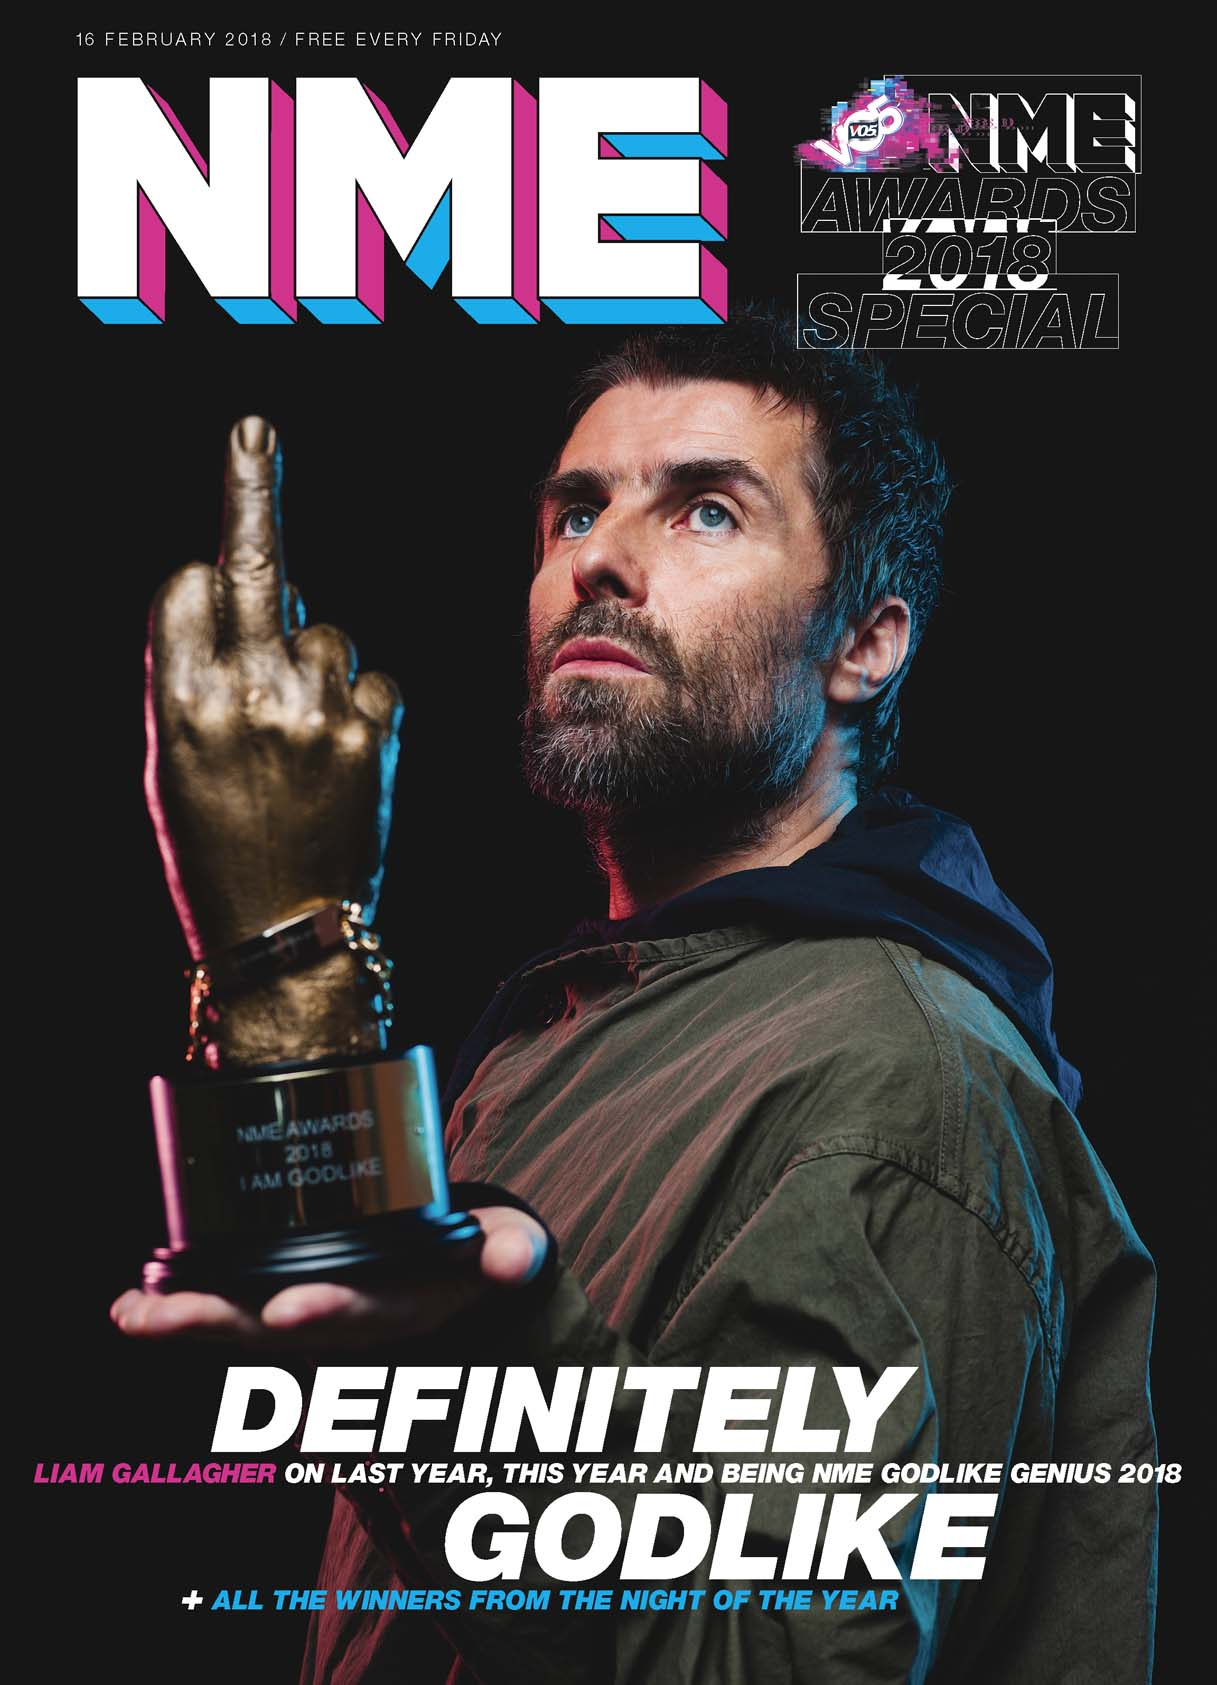 Liam Gallagher, NME, music, Manchester, awards